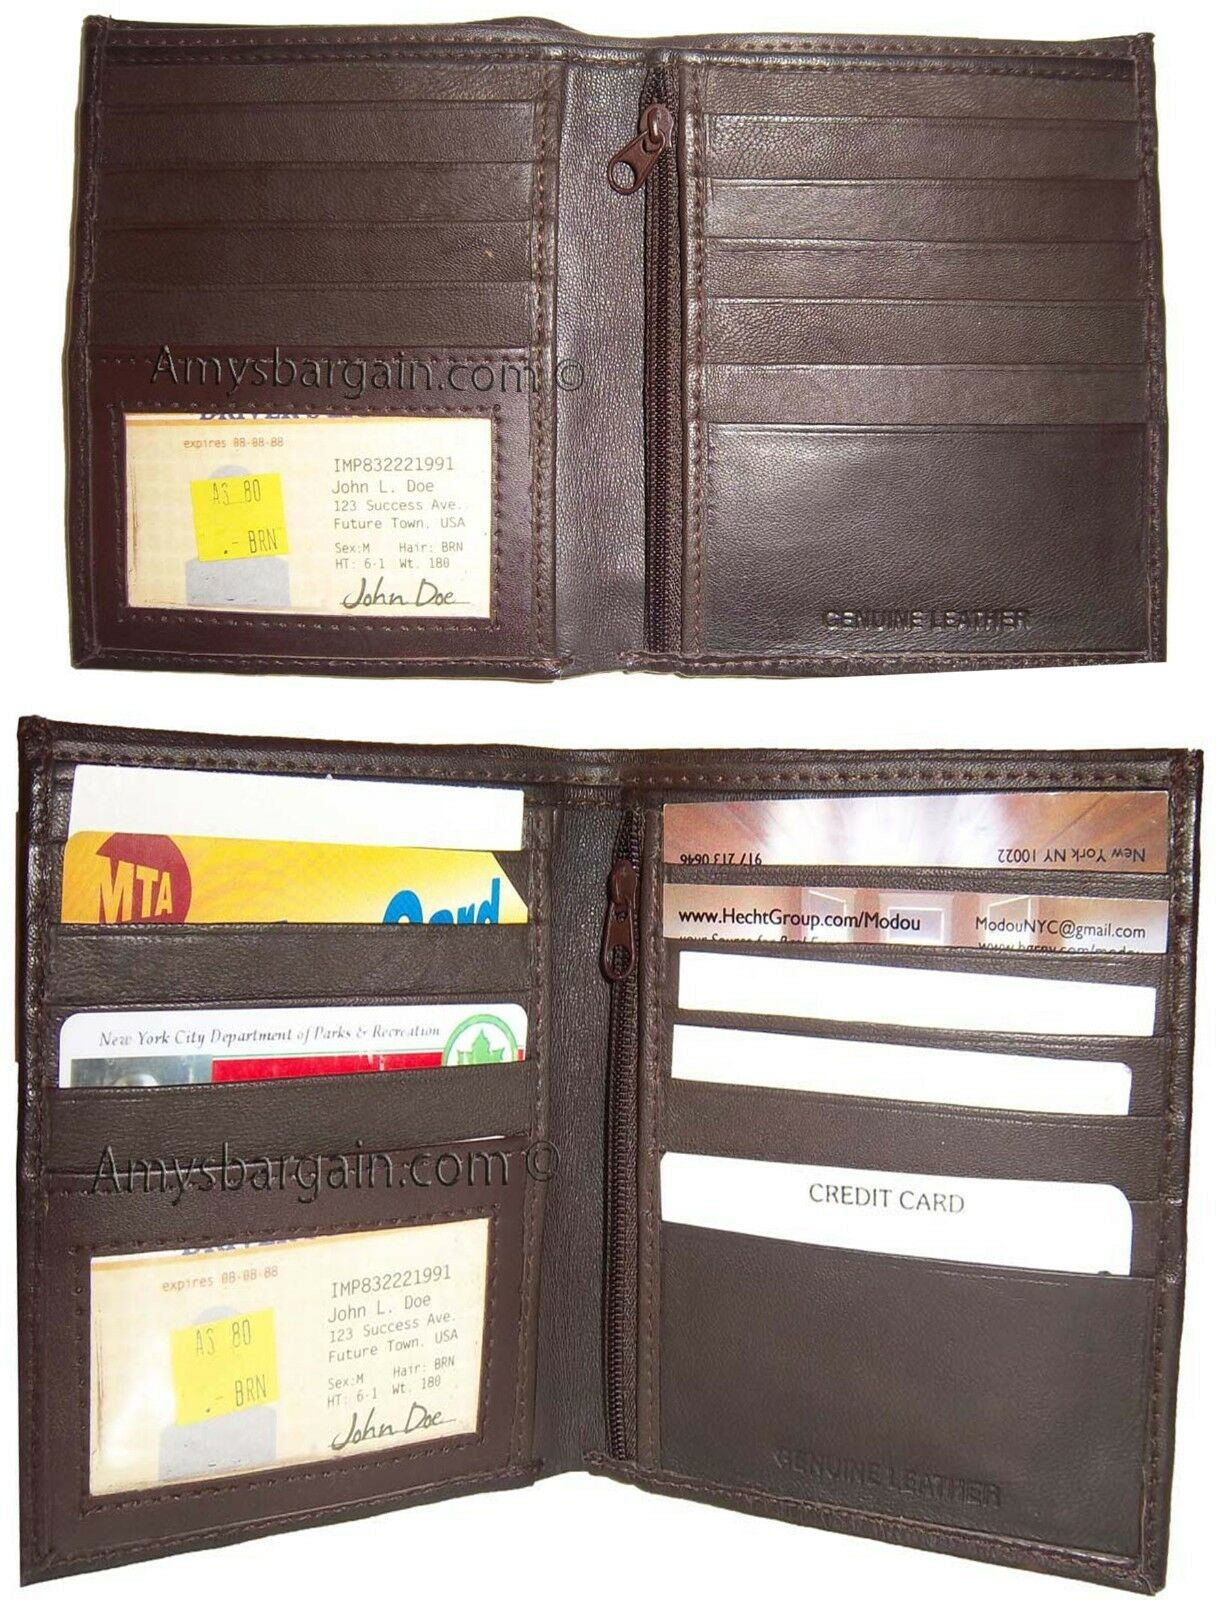 Lot of 2 Leather Hipster wallet billfold brown bifold zip coin purse wallet BN.